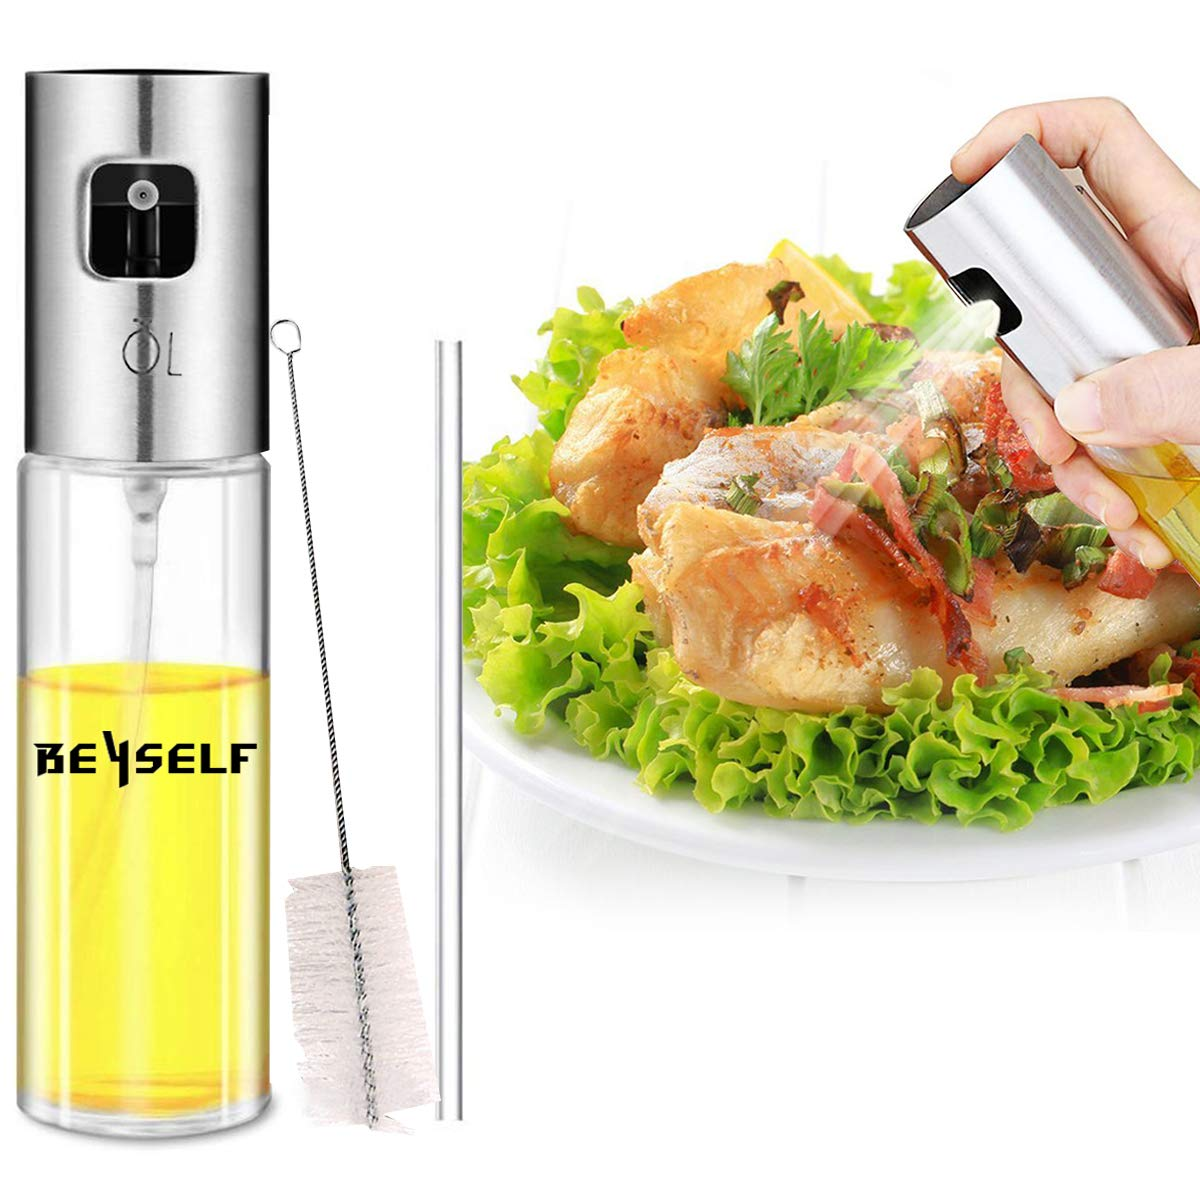 BeYself Oil Sprayer Dispenser, Oil & Vinegar Sprayer/Dispenser/Oil Spray Bottle 100ml Stainless Steel & Glass for BBQ, Salads, Cooking, Grilling, Frying